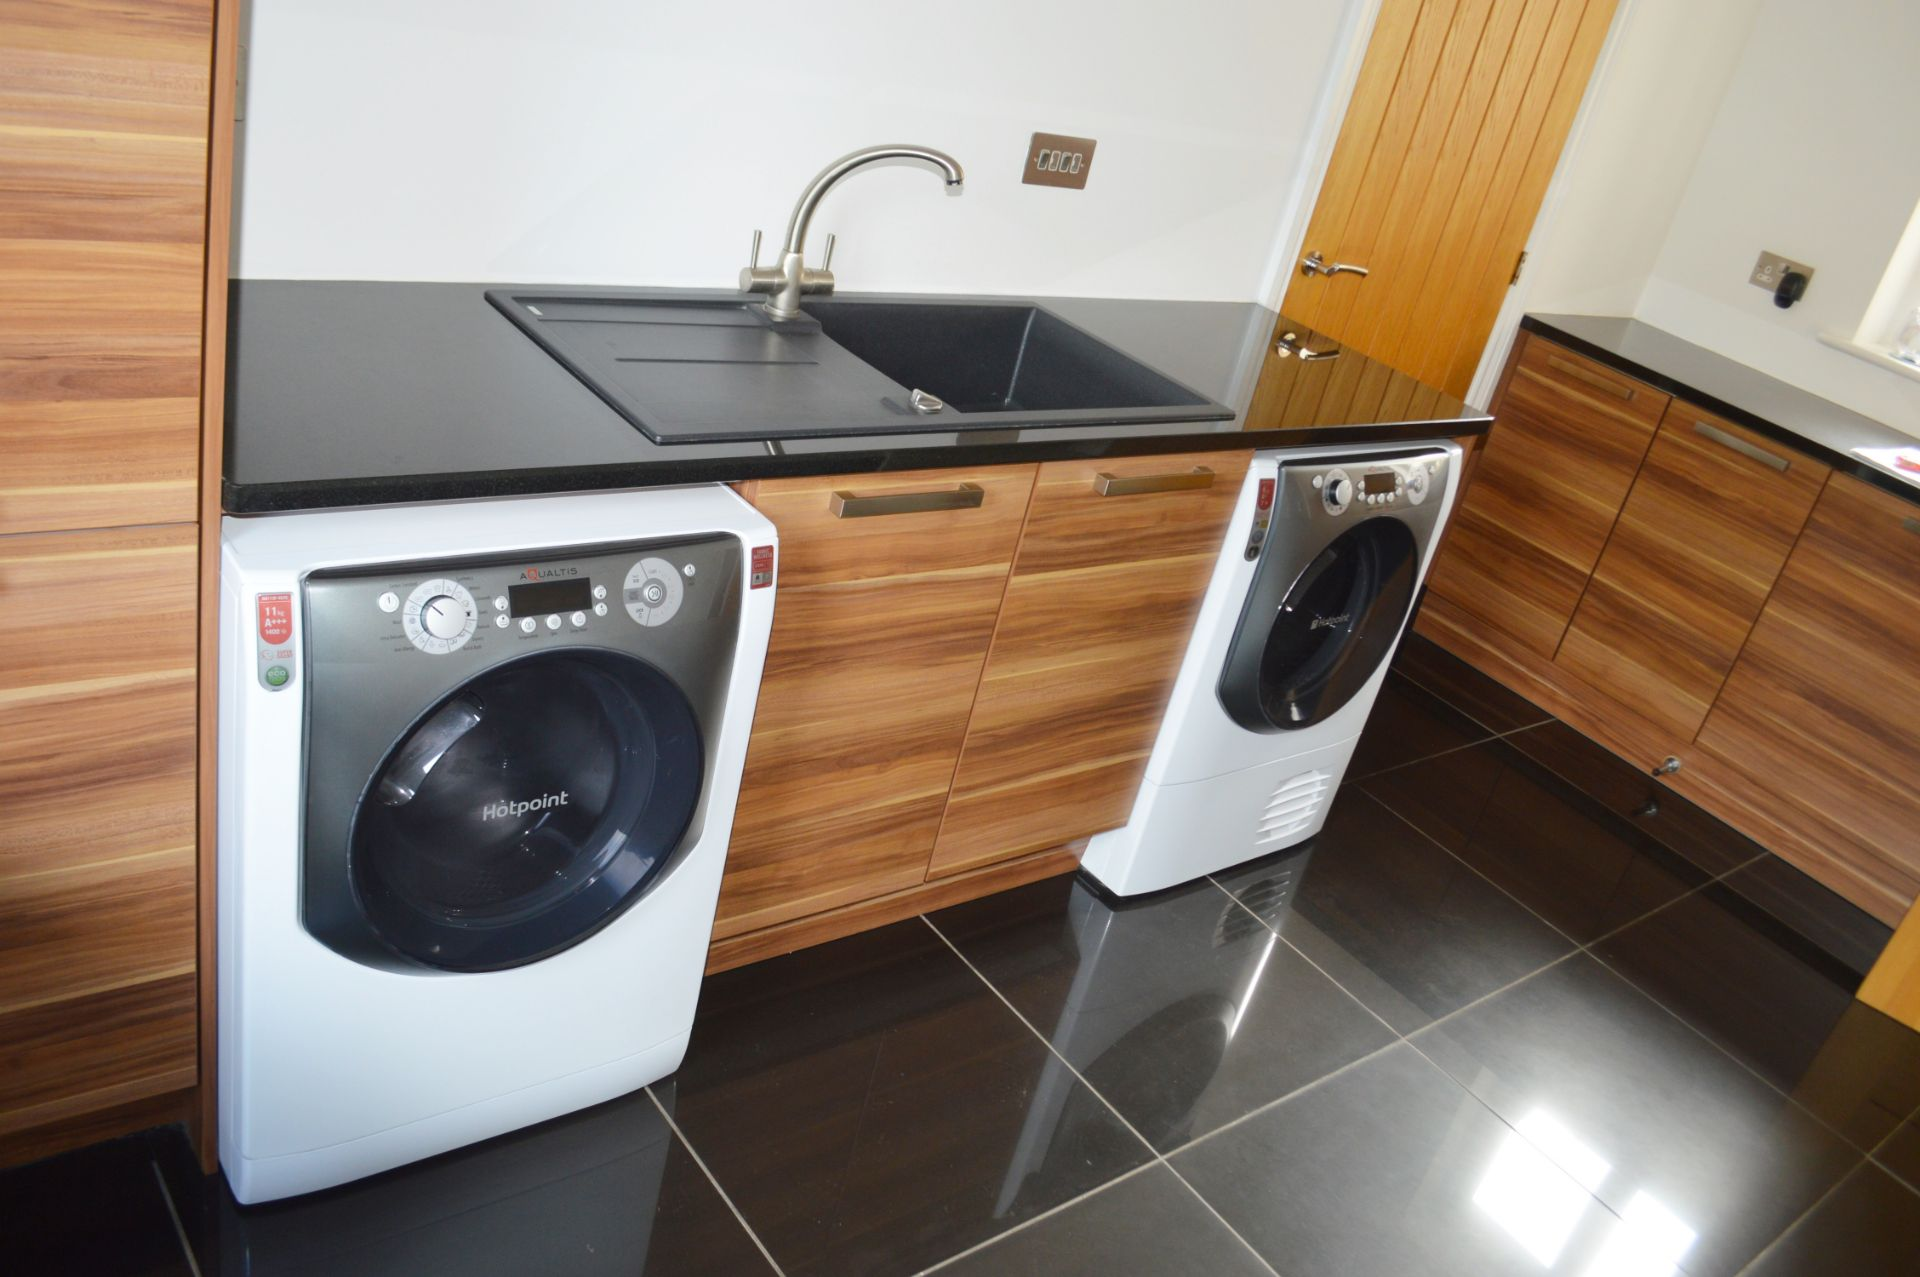 1 x Contemporary Bespoke Fitted Kitchen With Integrated Neff Branded Appliances, Quartz Worktops - Image 8 of 52